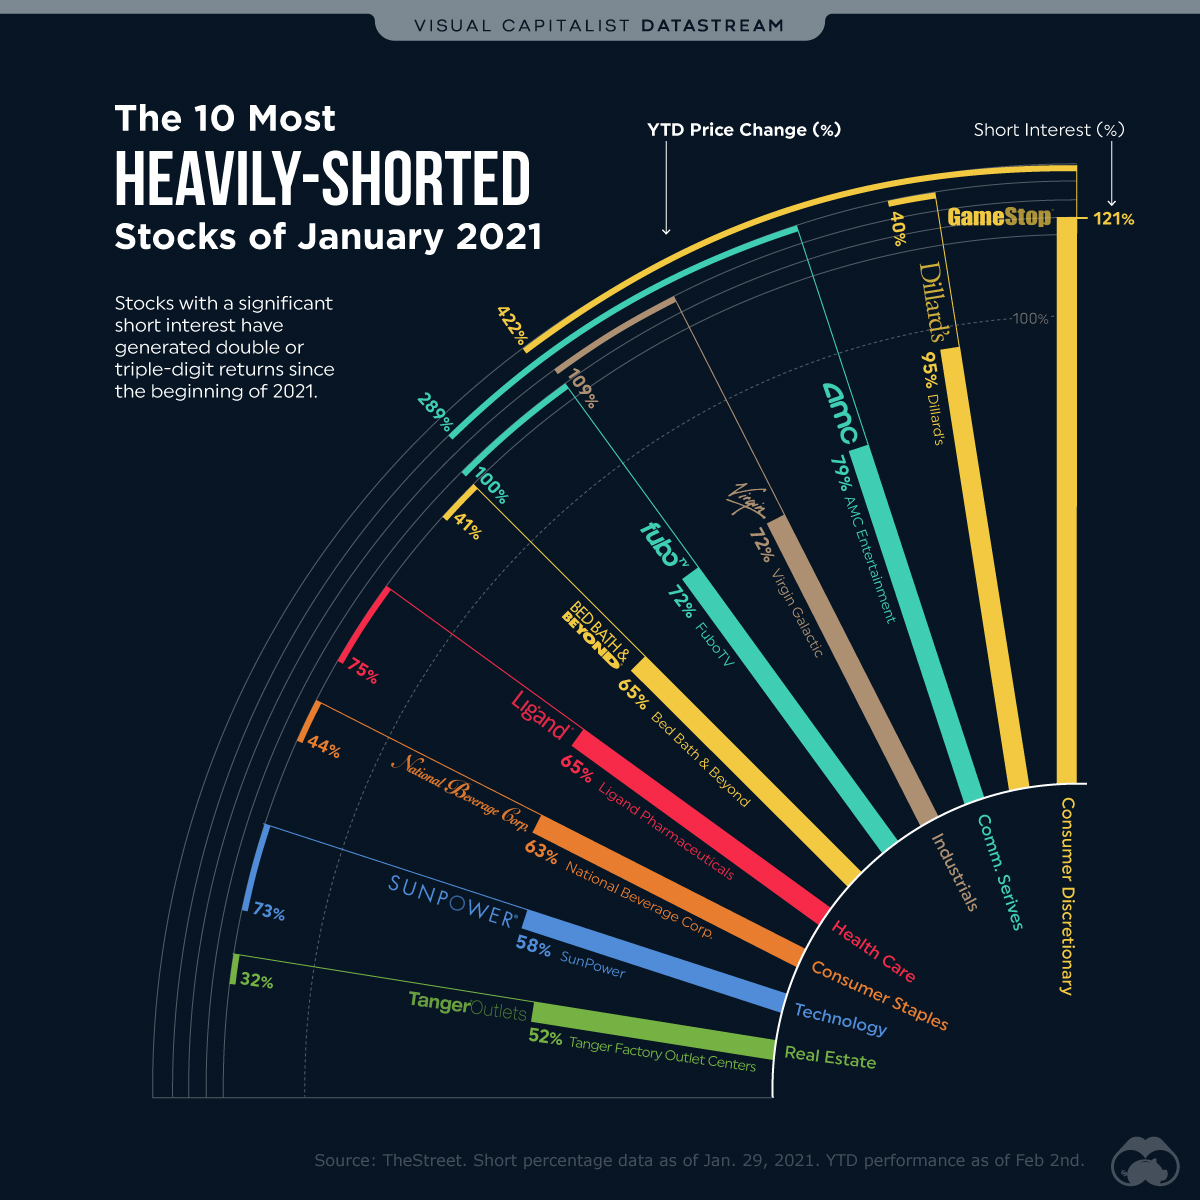 Short Sellers and the Most Shorted Stocks in January 2021